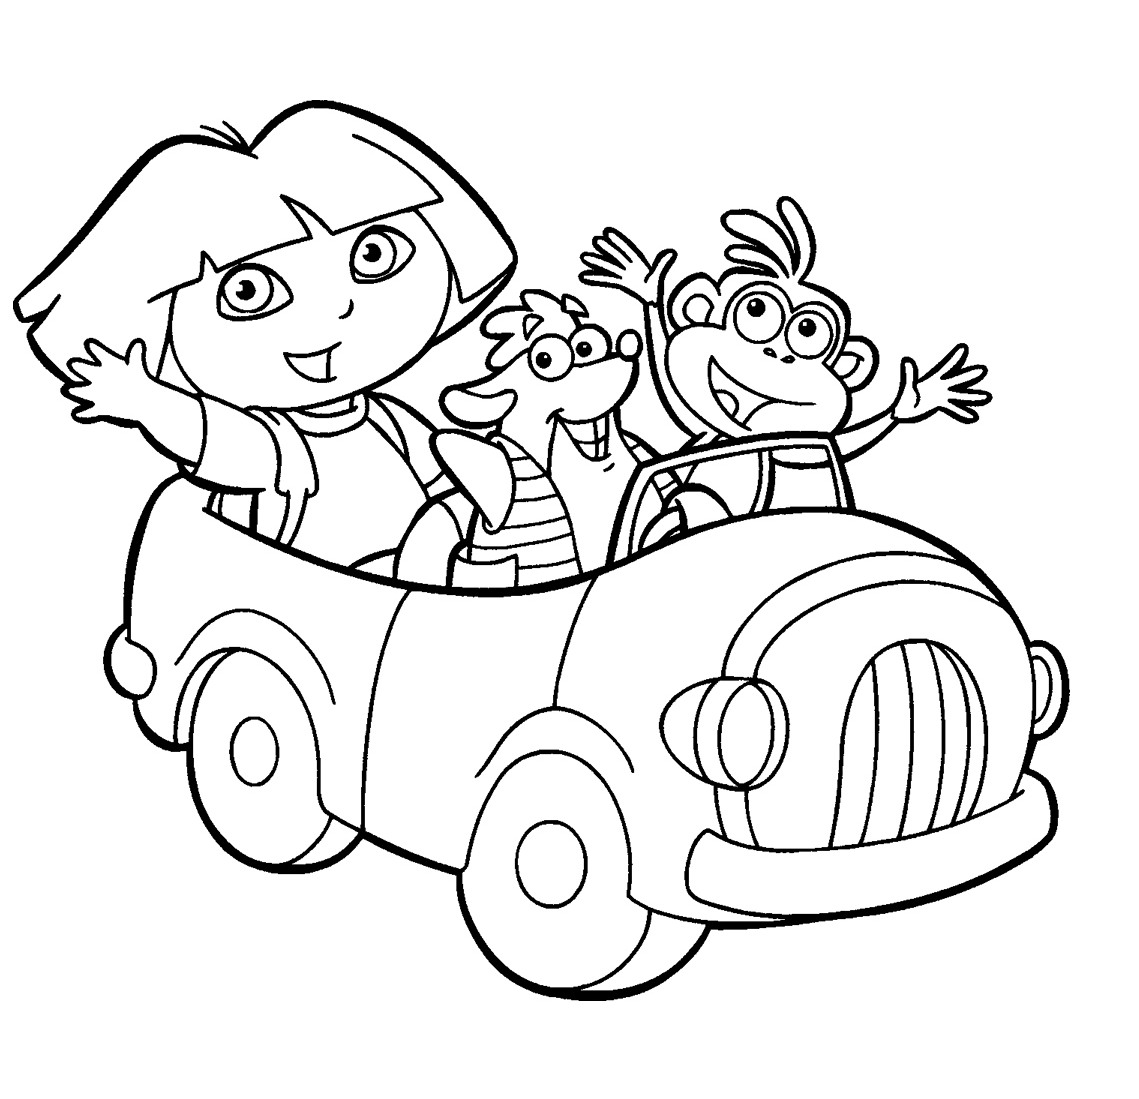 dora the explorer colouring pictures craftsactvities and worksheets for preschooltoddler and explorer the dora pictures colouring